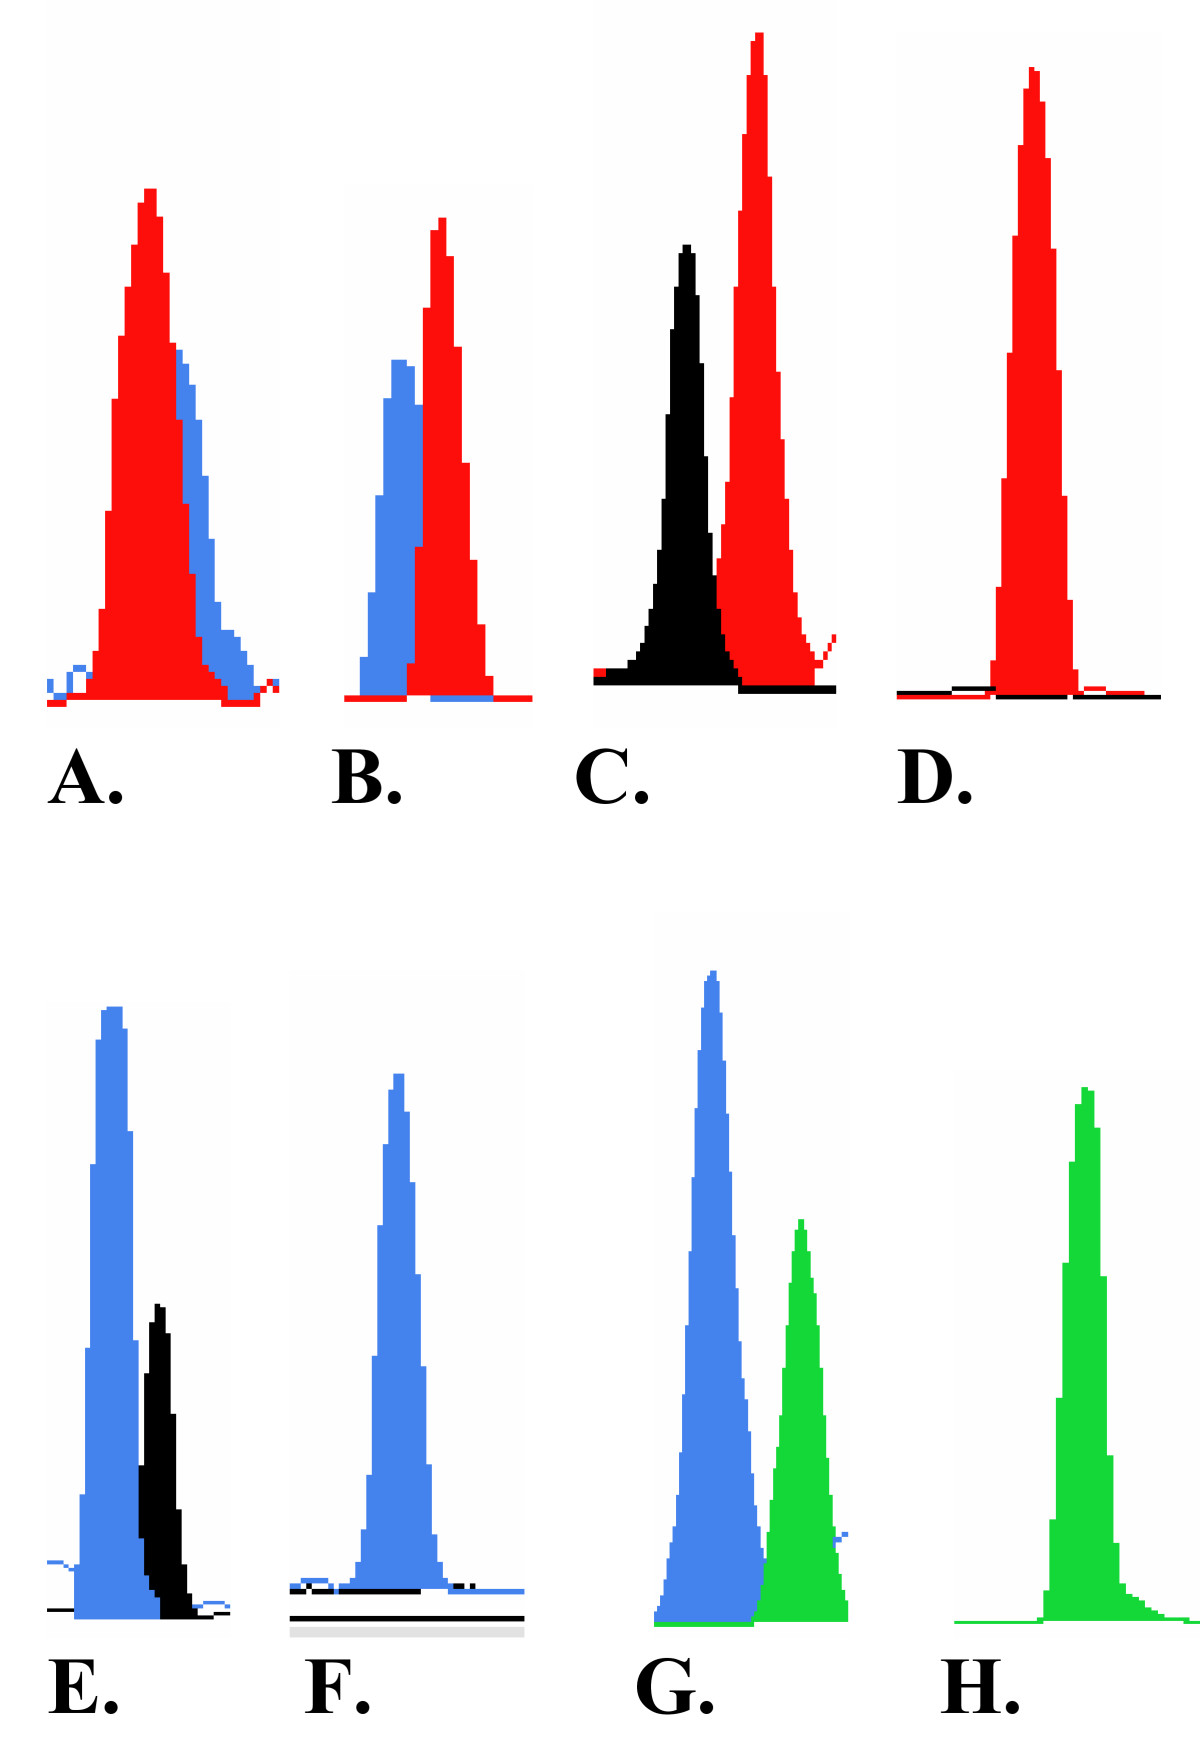 https://static-content.springer.com/image/art%3A10.1186%2F1471-2156-7-49/MediaObjects/12863_2006_Article_472_Fig2_HTML.jpg